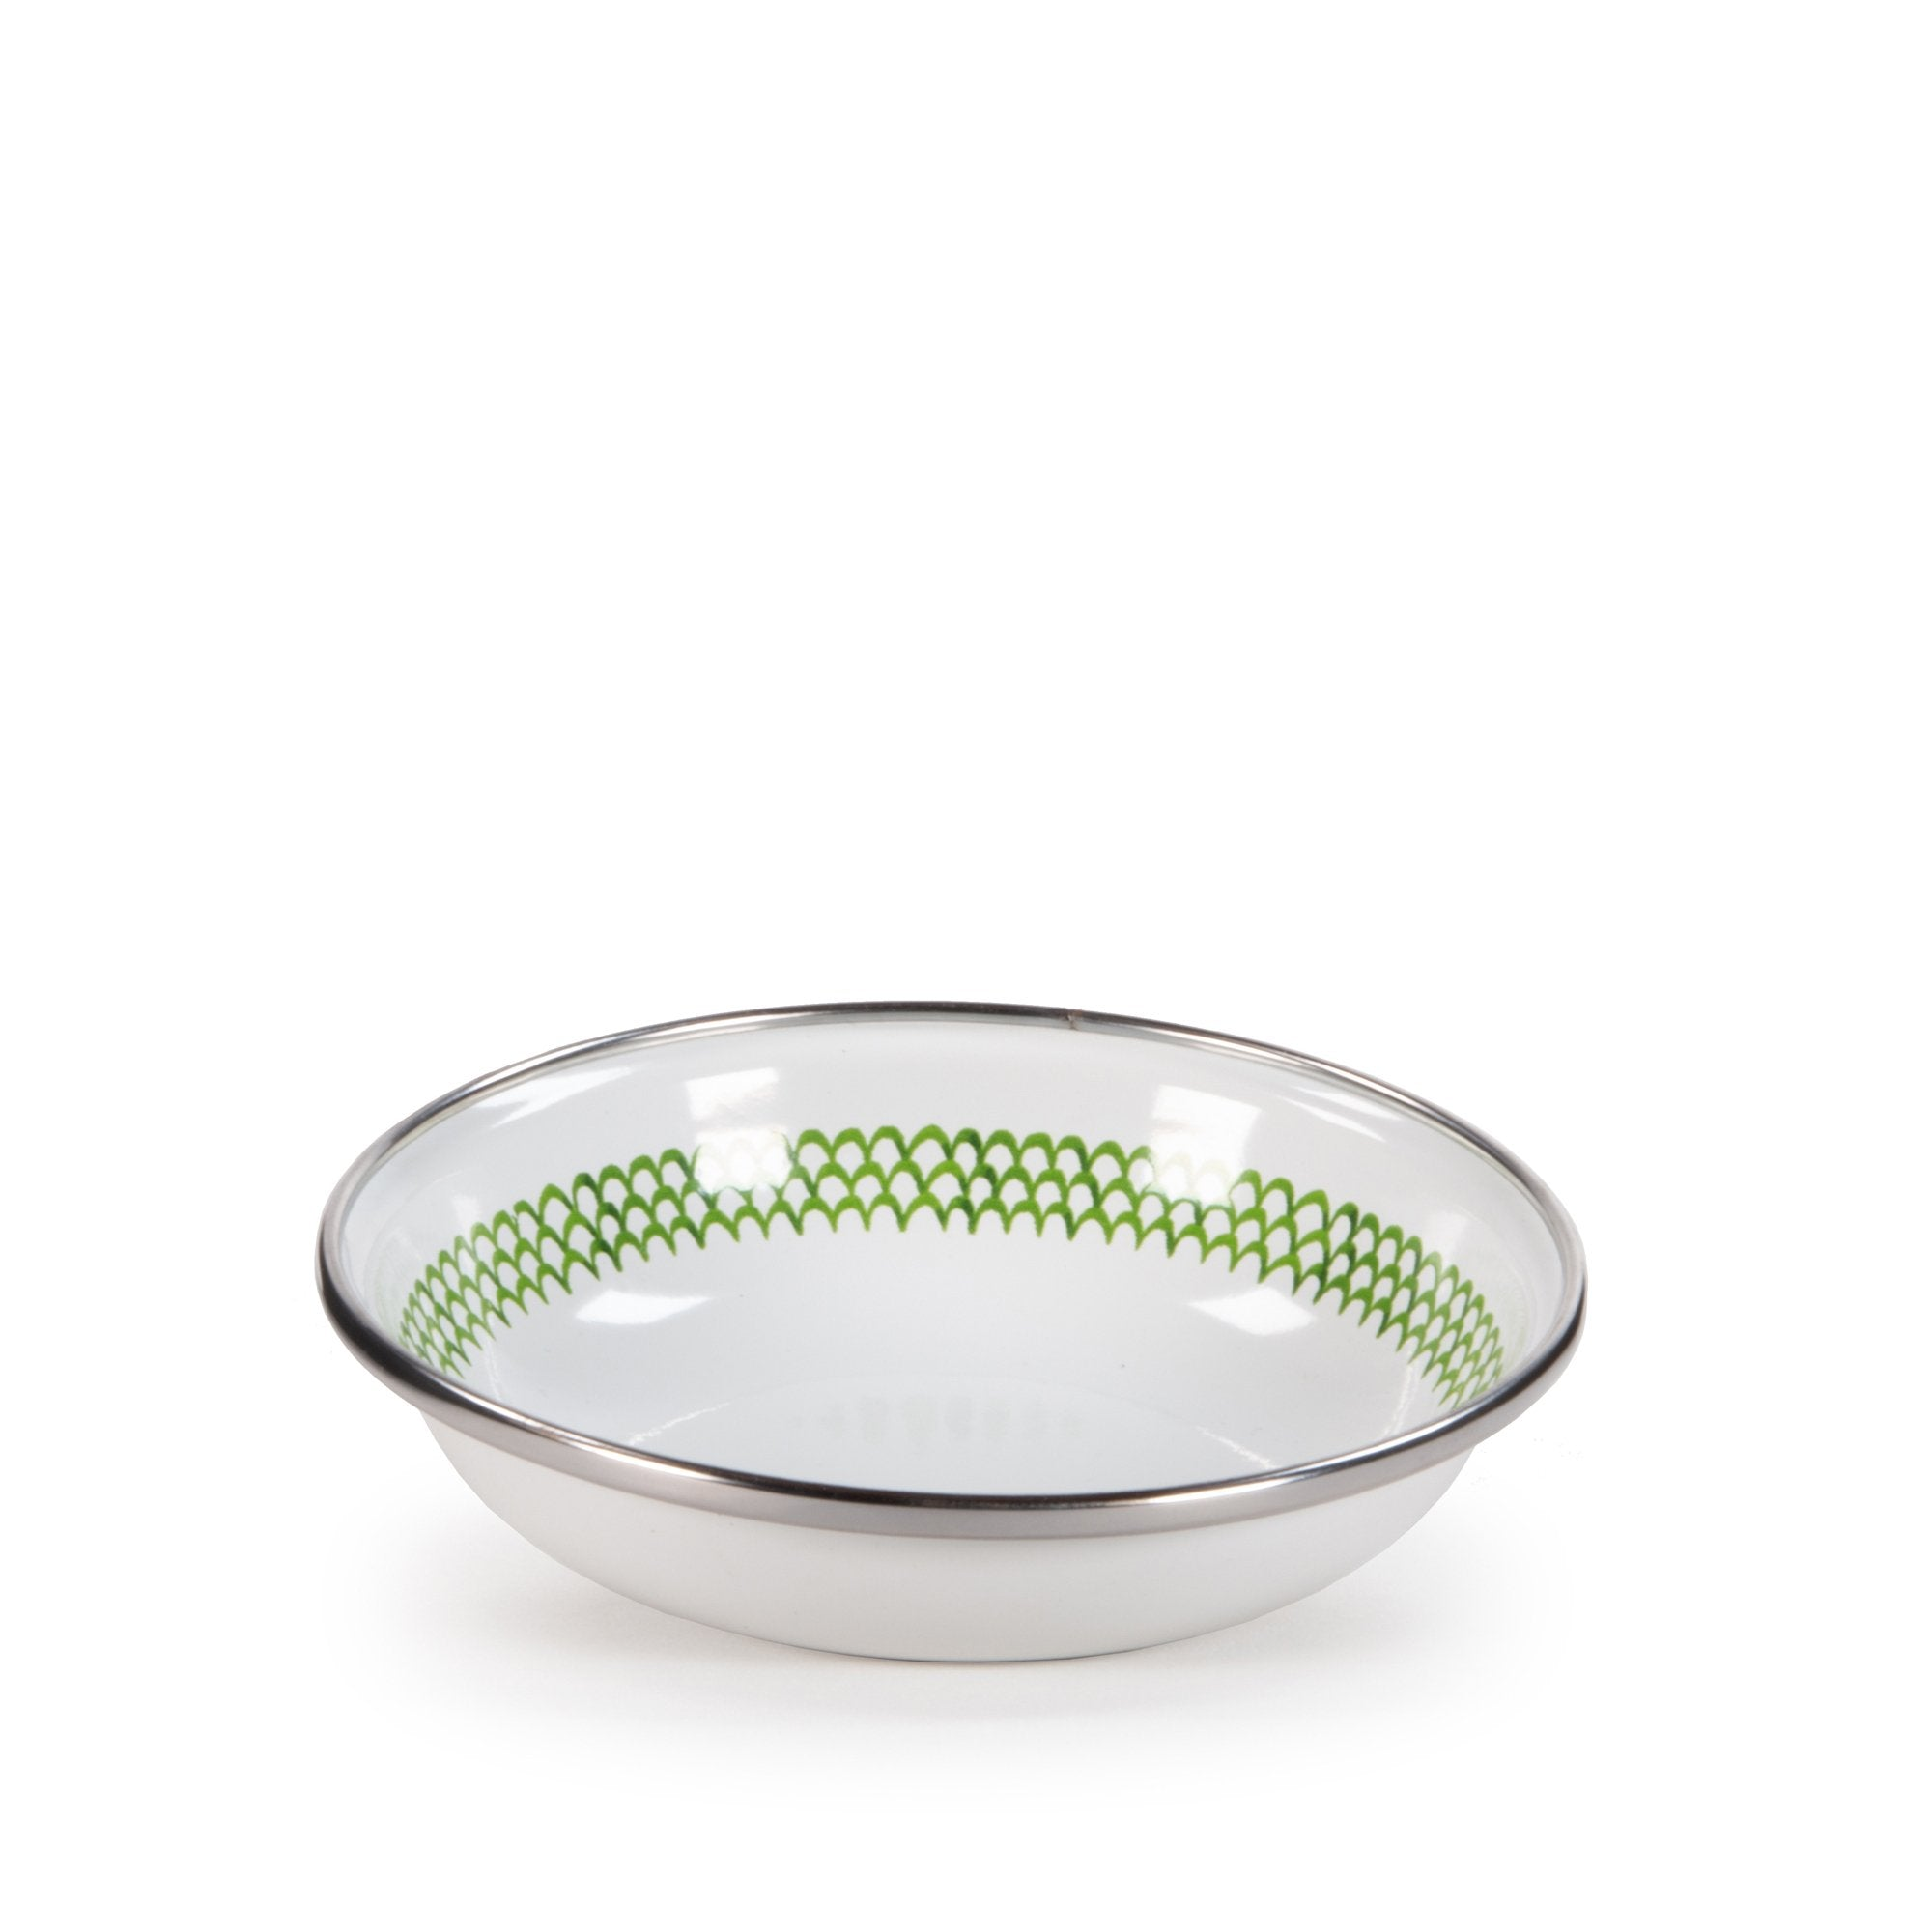 GS59S6 - Set of 6 Green Scallop Tasting Dishes Product 1